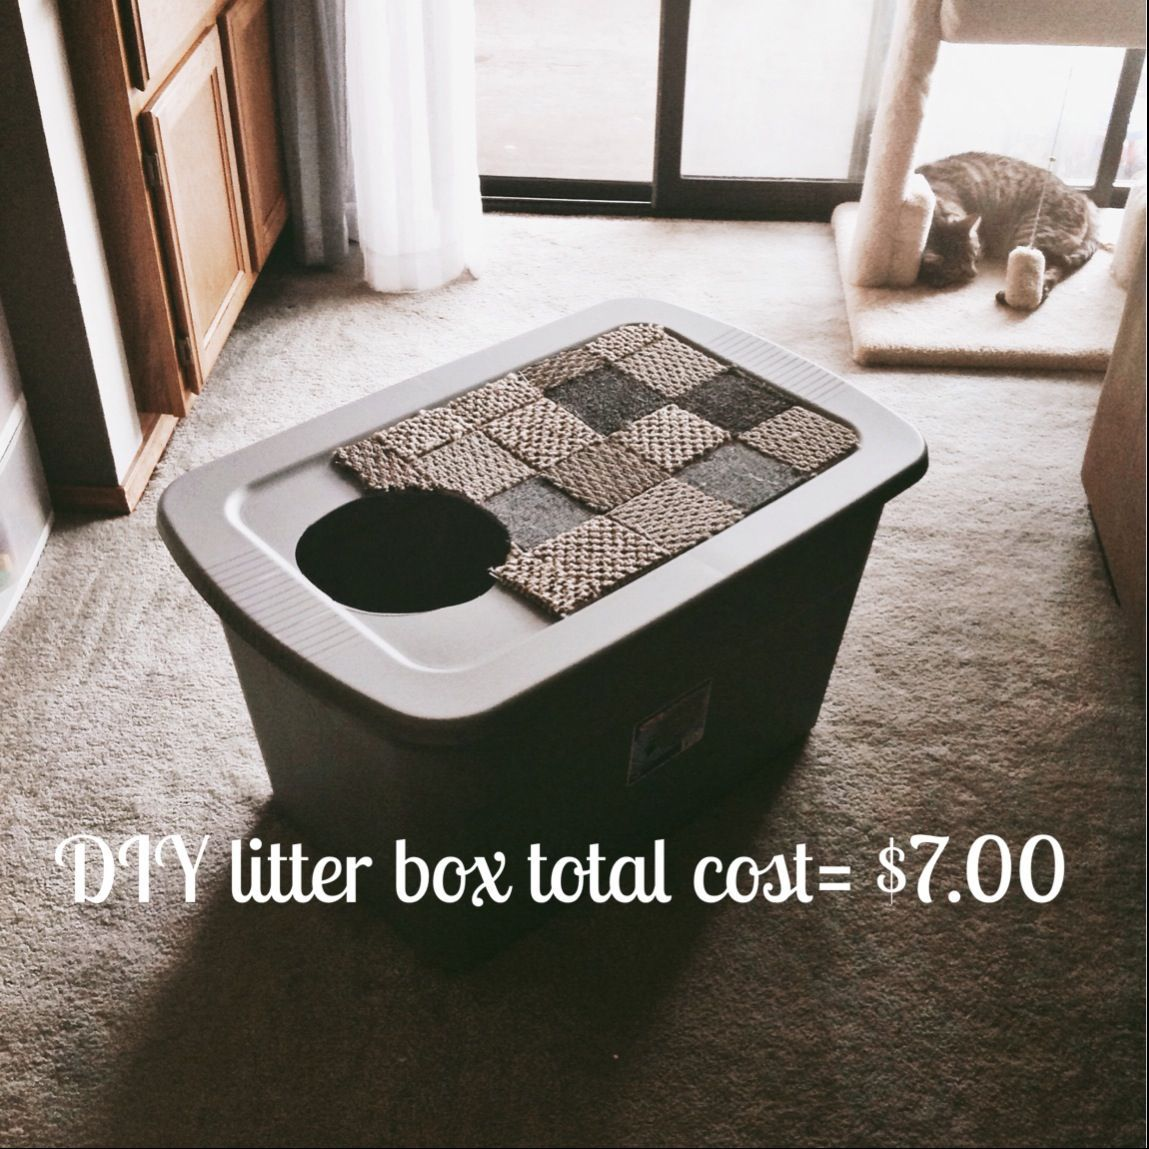 Diy Litter Box Made Simple And Affordable For Larger Cats And